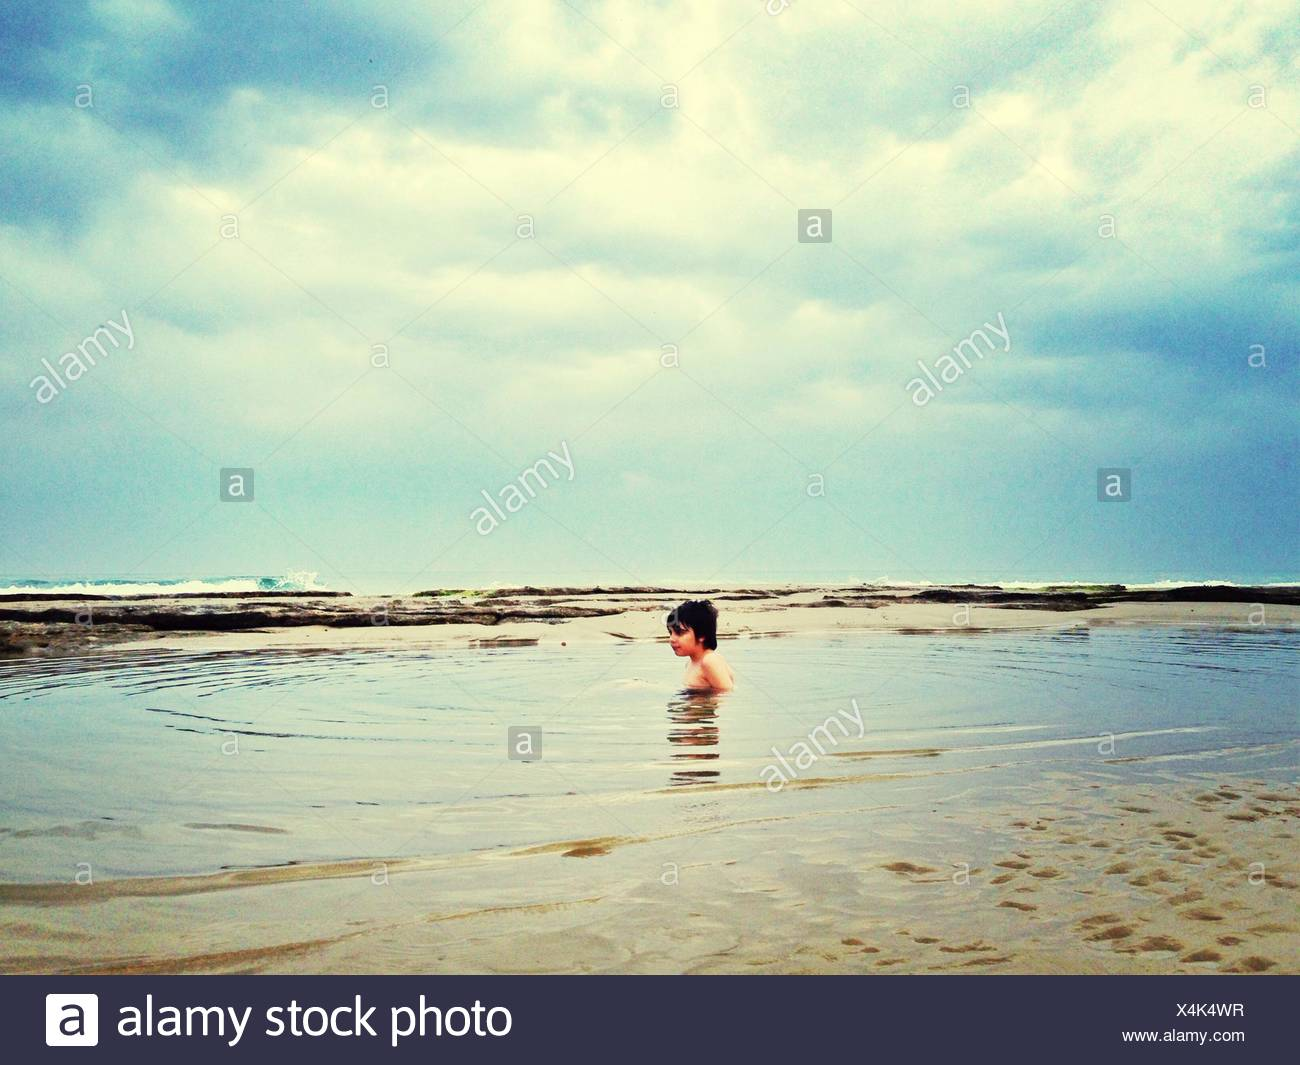 Shirtless Boy Swimming In Sea - Stock Image